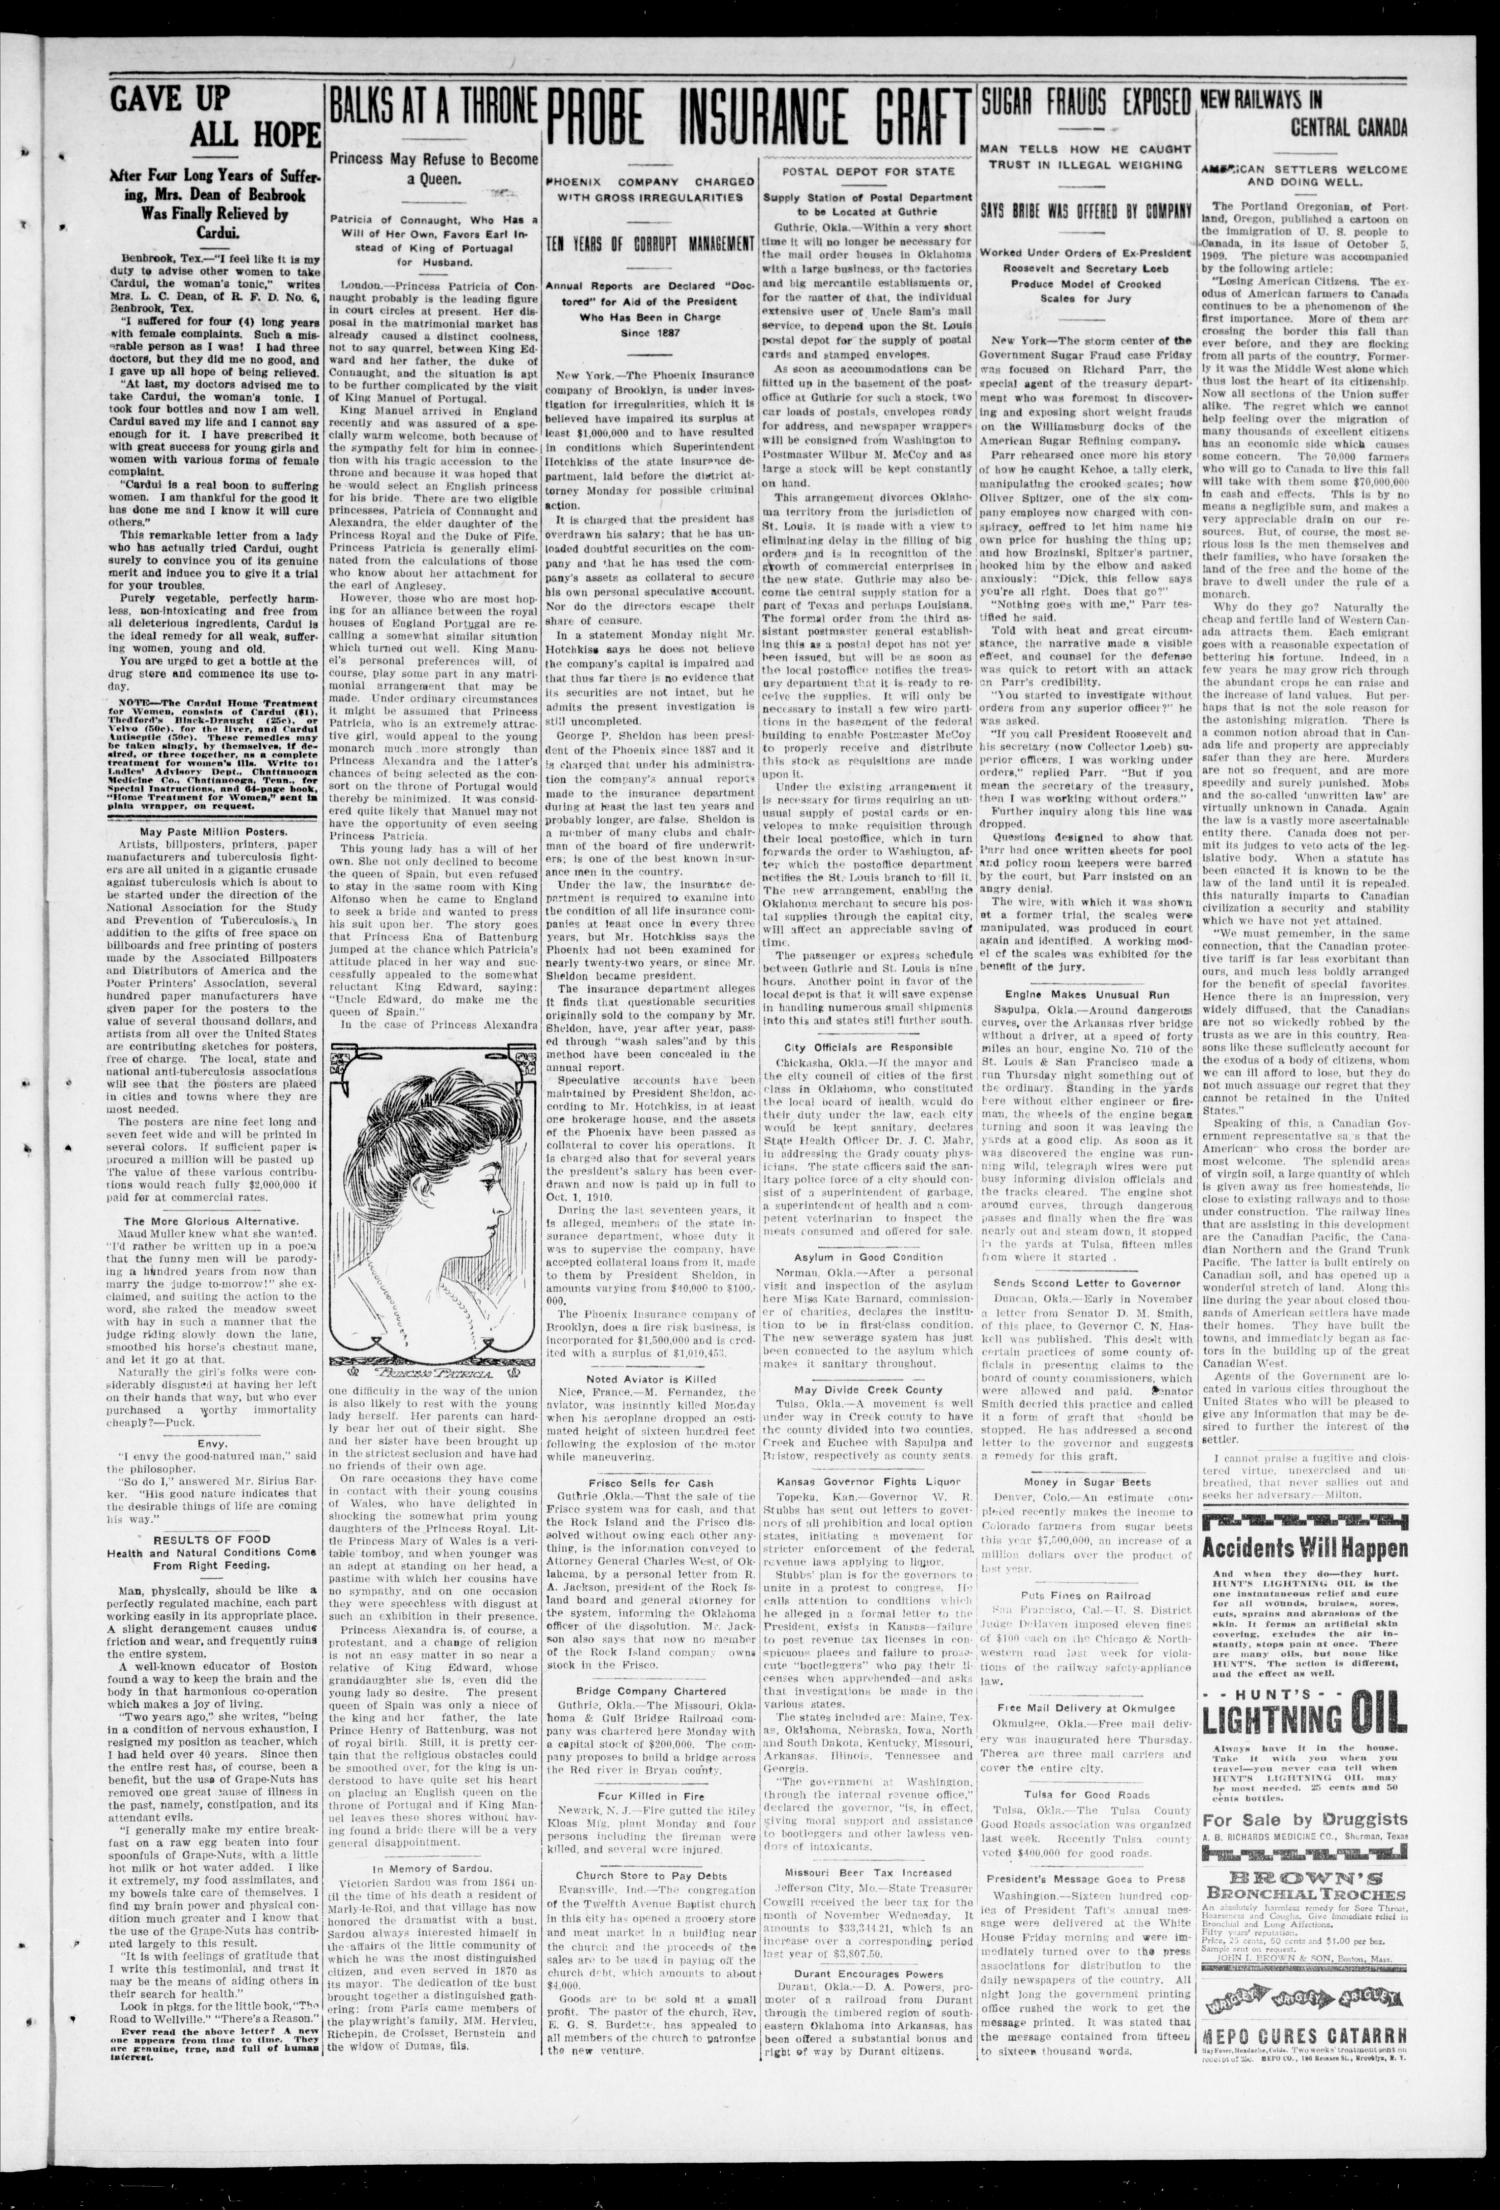 The Moore Messenger. (Moore, Okla.), Vol. 2, No. 5, Ed. 1 Saturday, December 11, 1909                                                                                                      [Sequence #]: 3 of 12